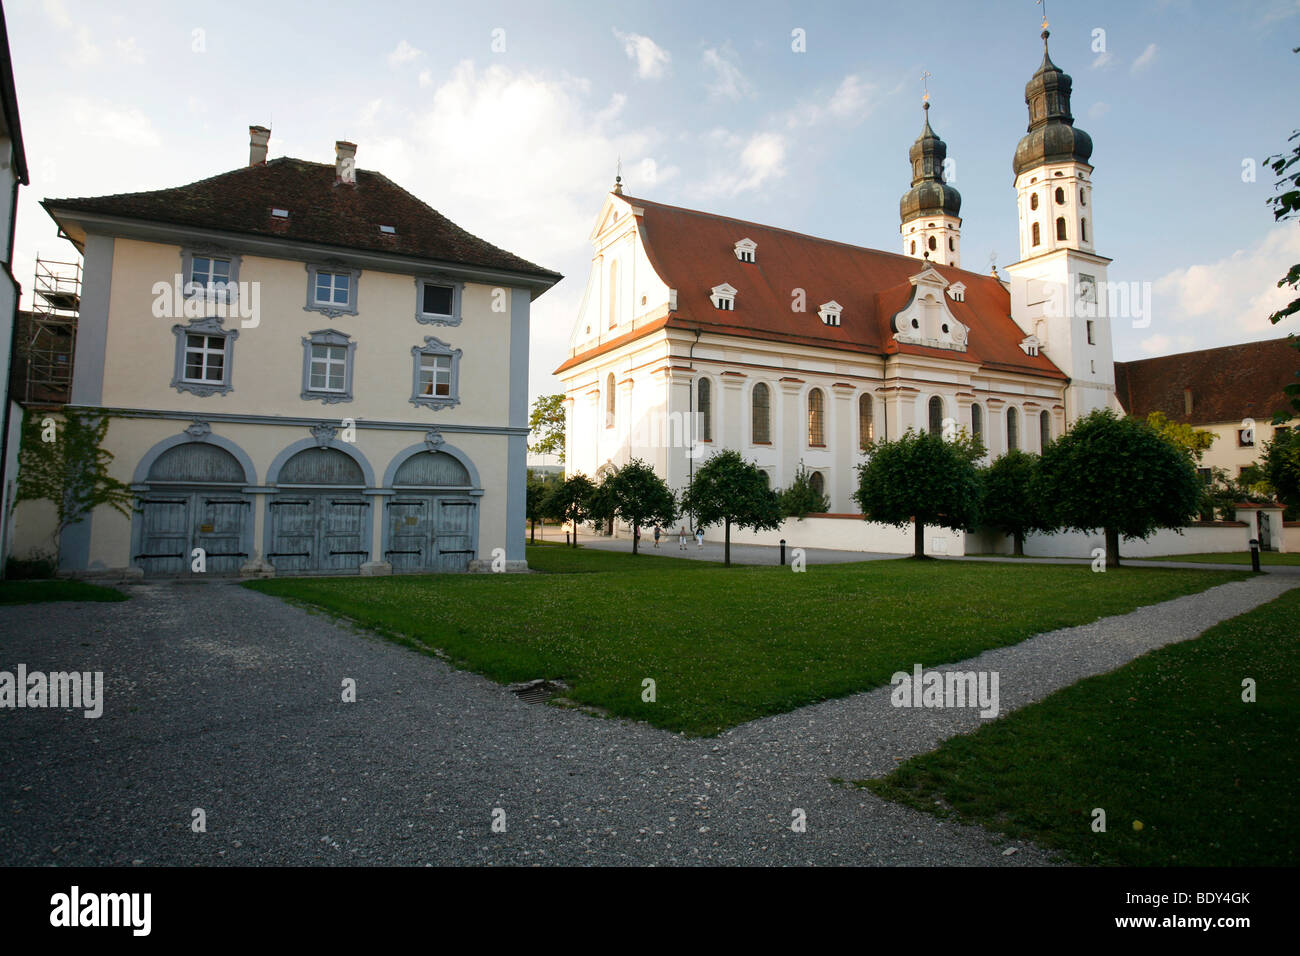 Ecclesiastical Academy of Teacher Education, church and former monastery Obermarchtal, Alb Donau district, Baden - Stock Image